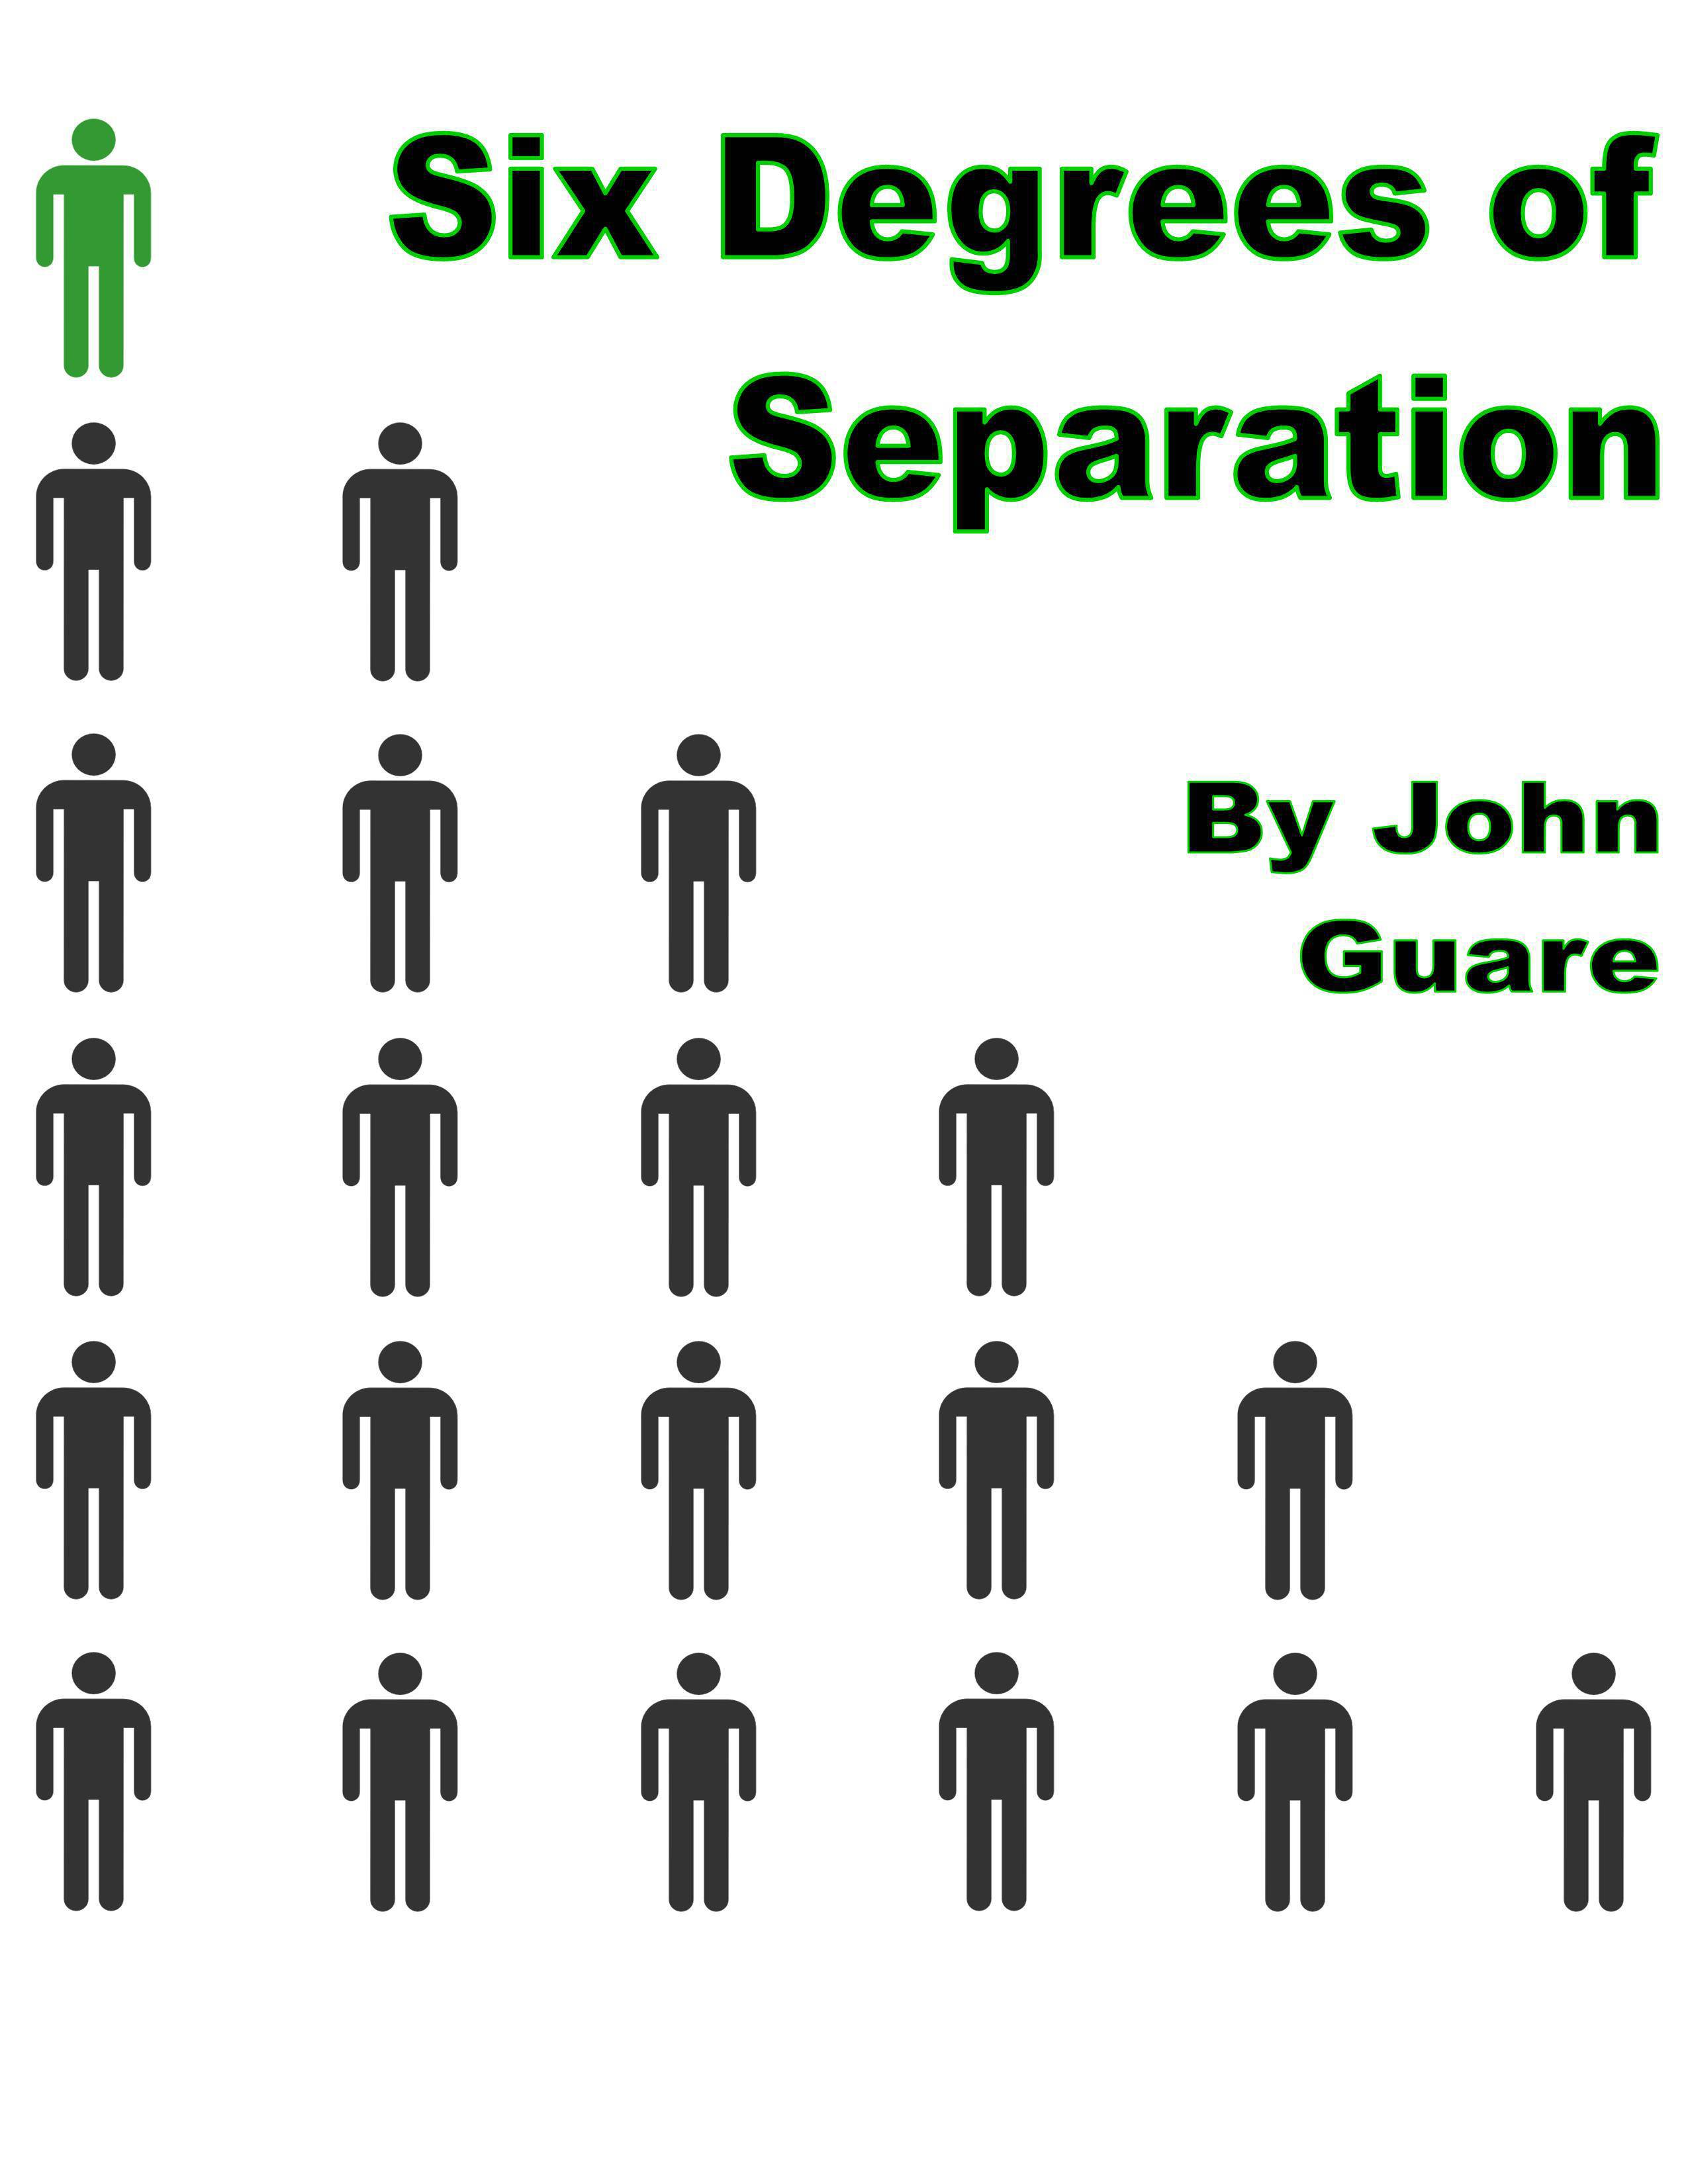 six degrees of separation essay Read this essay on six degrees of separation come browse our large digital warehouse of free sample essays get the knowledge you need in order to pass your classes and more.